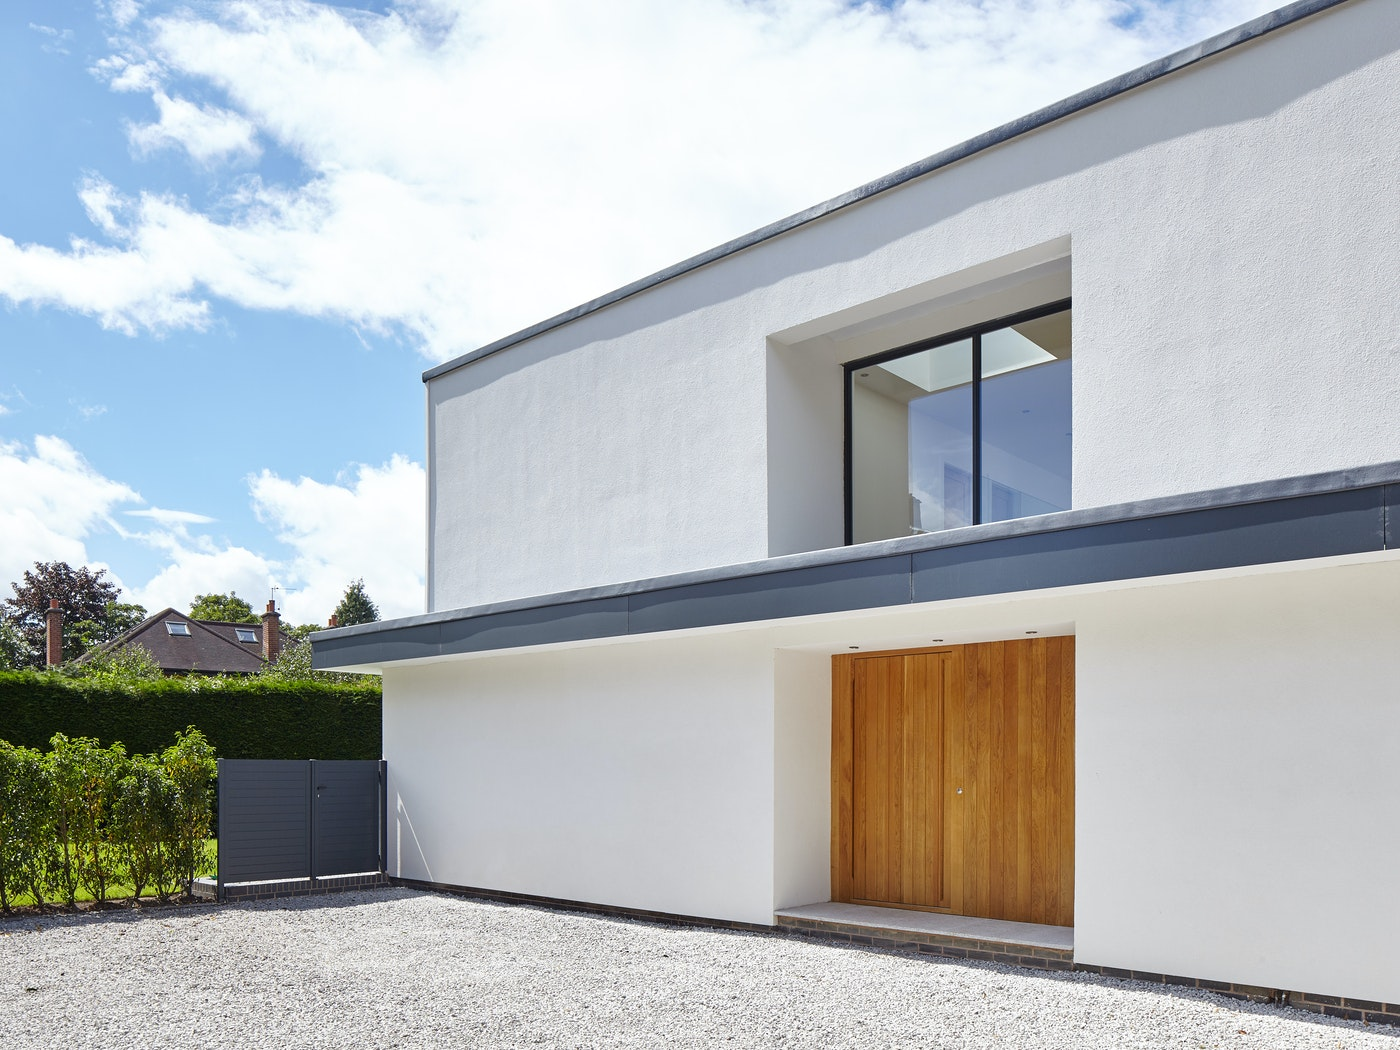 This flat overhang forms a part of the building design and gives excellent coverage to the flush front door